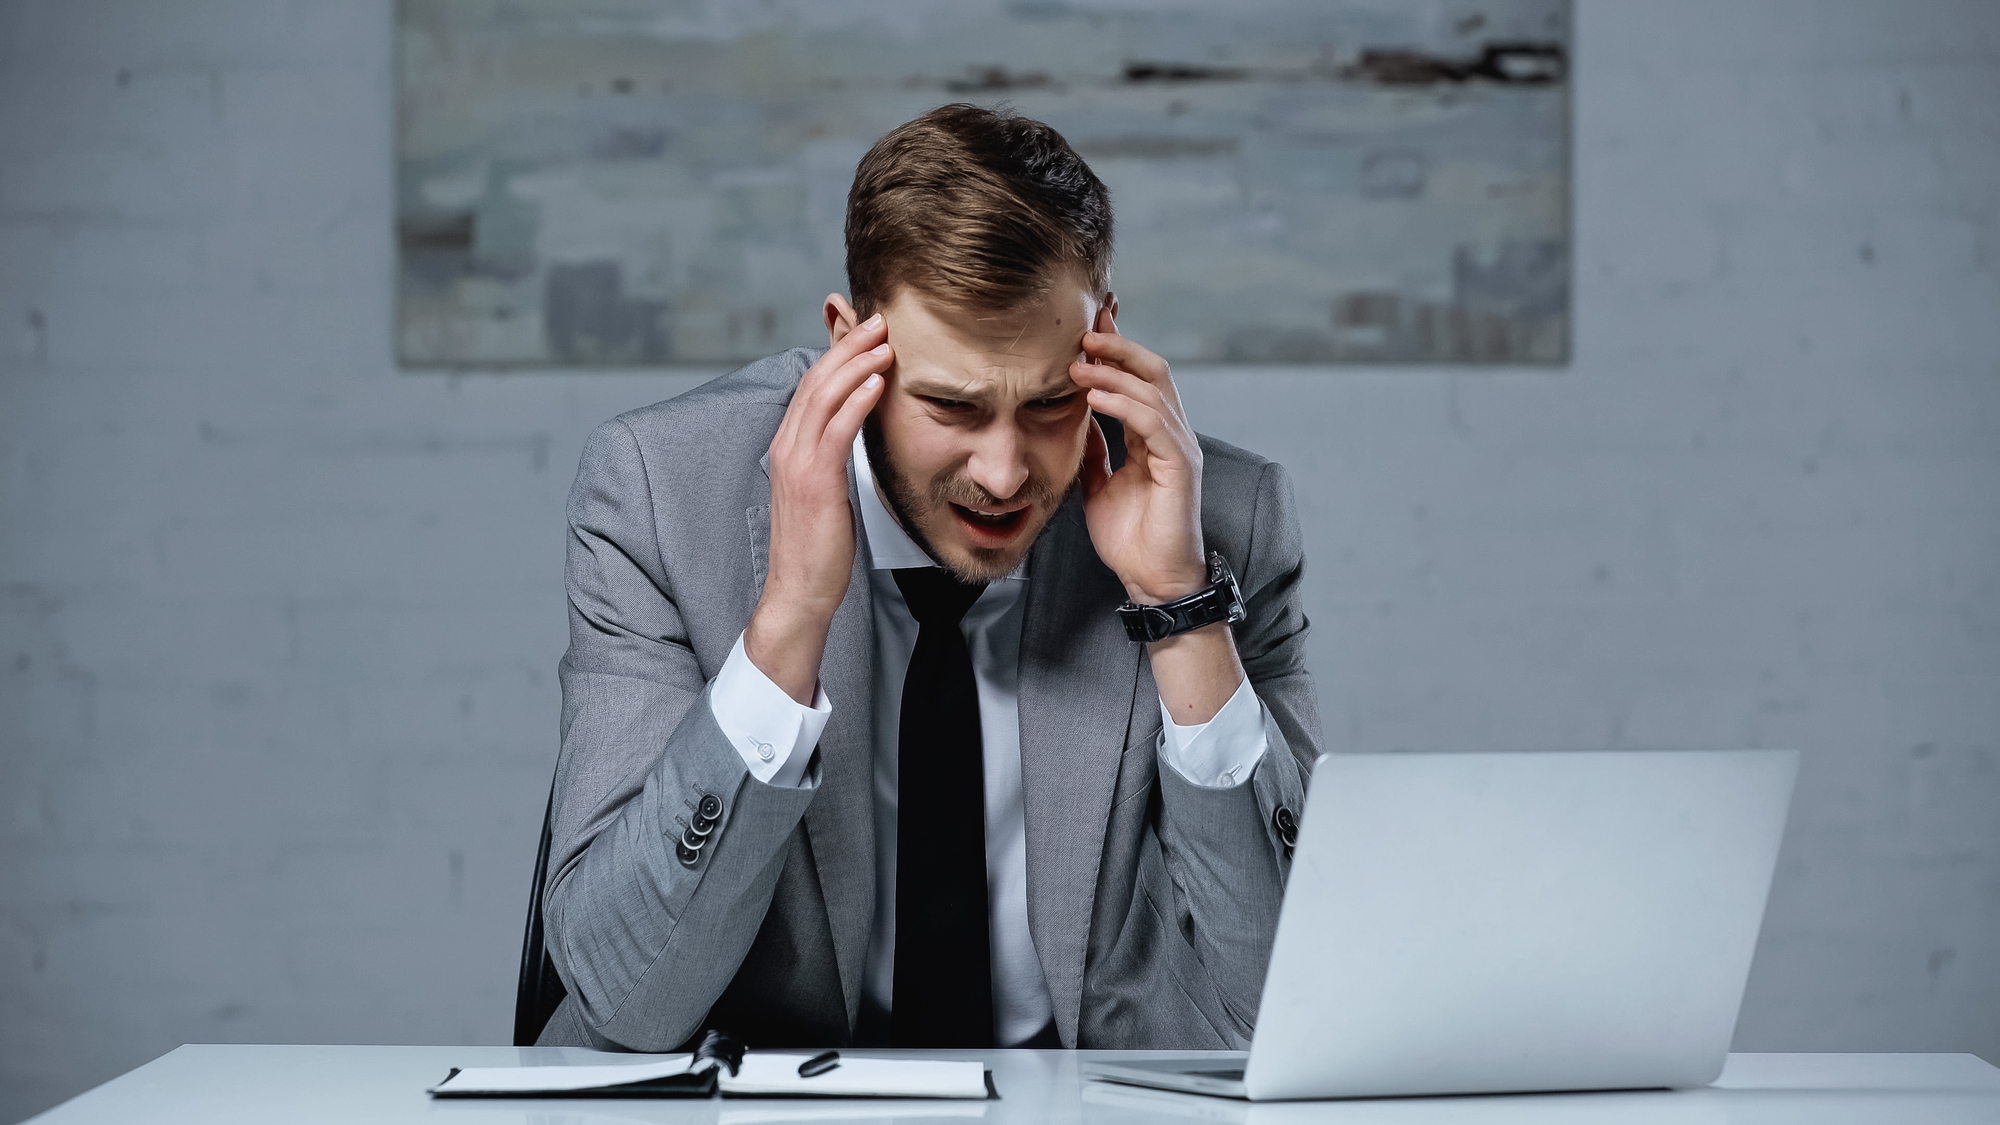 Upset businessman in suit touching head while having migraine in office